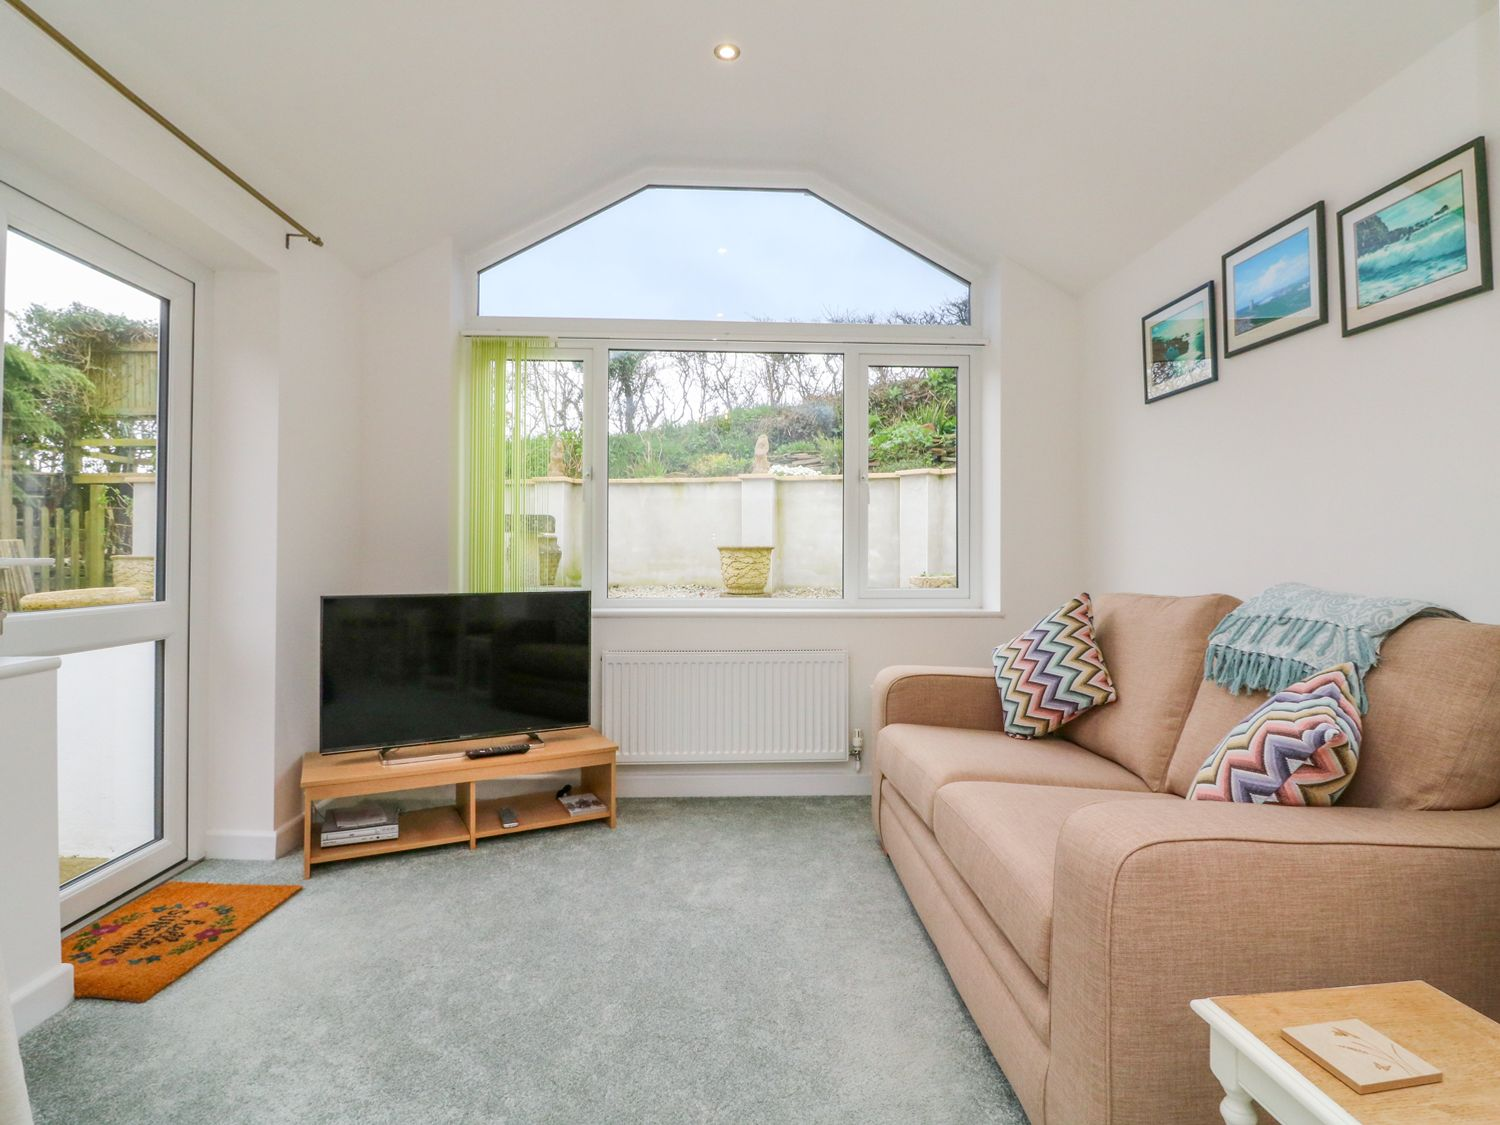 Daisy Chain Cottage in Bude - sleeps 2 people